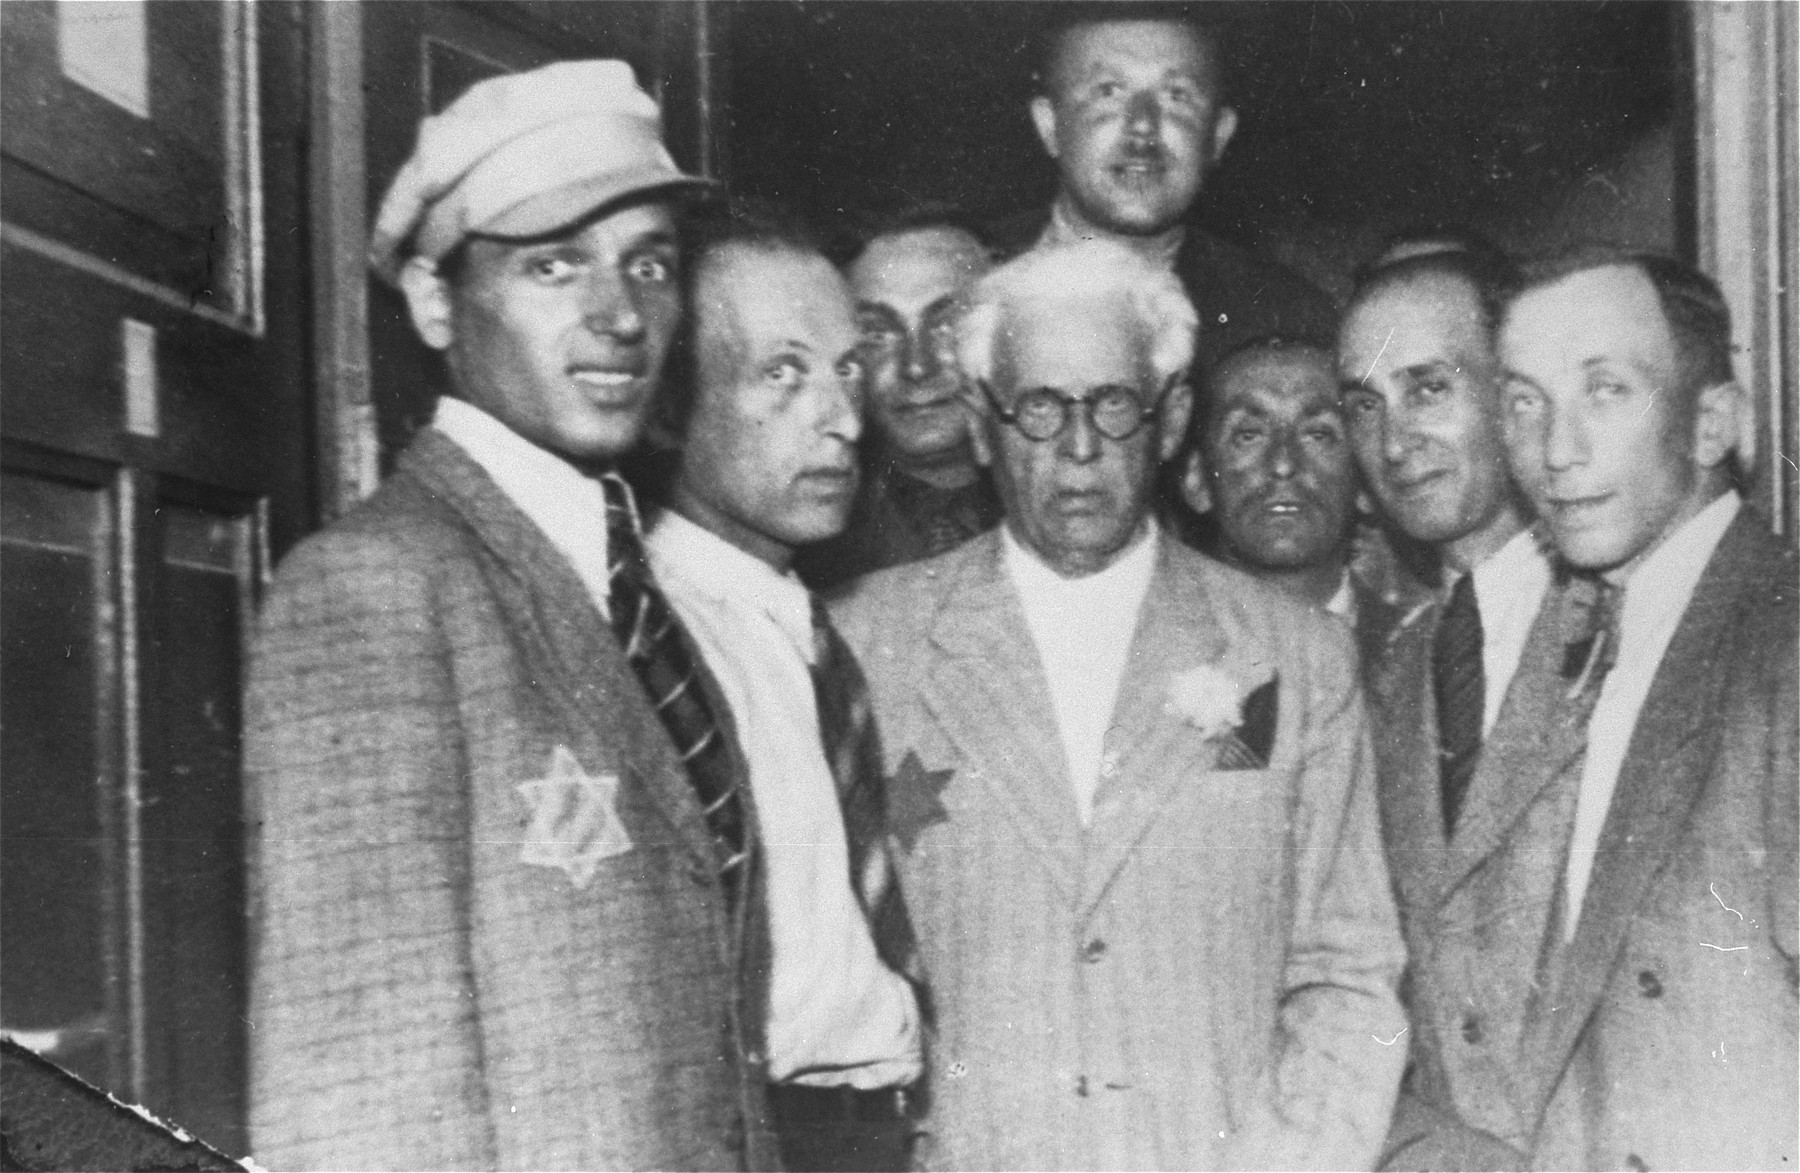 Mordechai Chaim Rumkowski, chairman of the Jewish Council (center), poses with members of the Lodz ghetto police.  Baruch Praszker is third from the right.